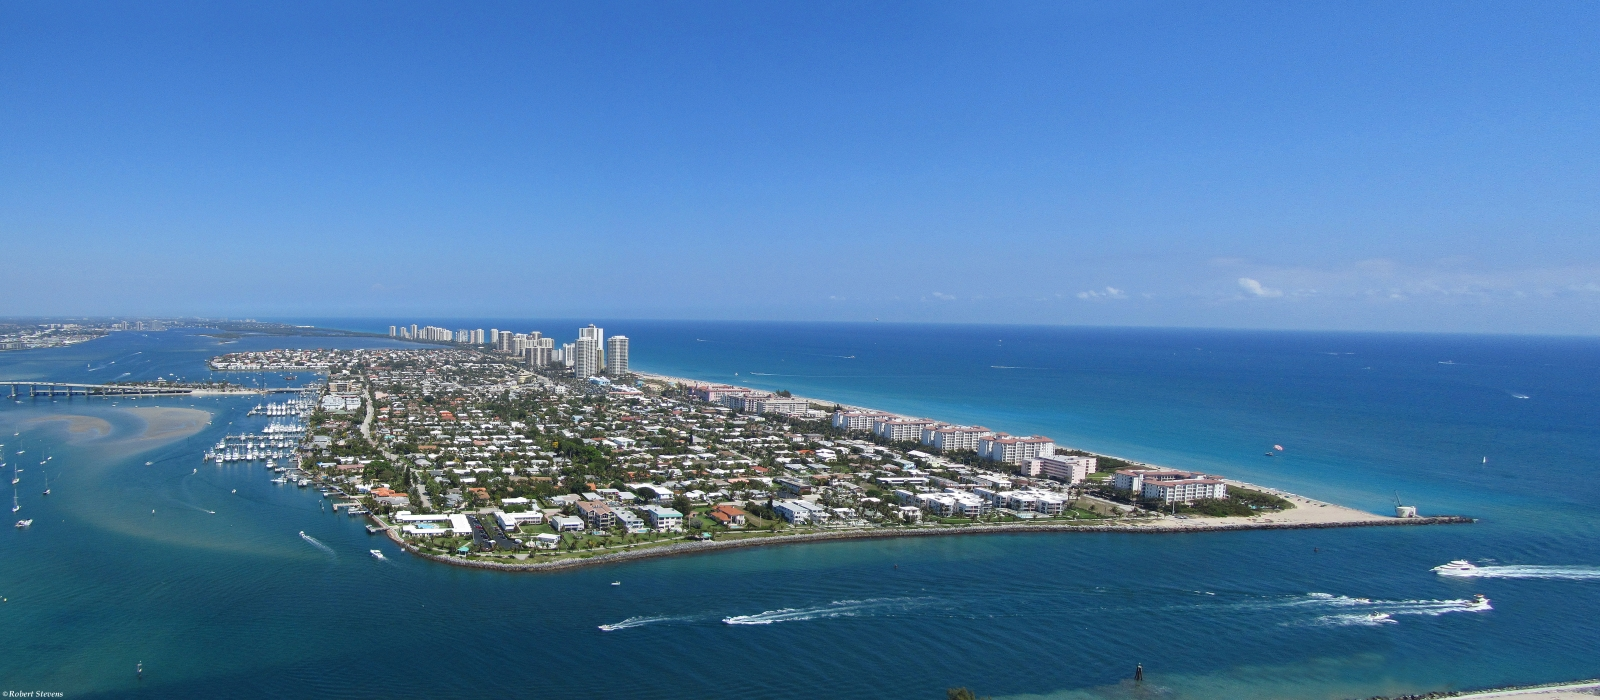 South Florida Where To Live The Hull Truth Boating